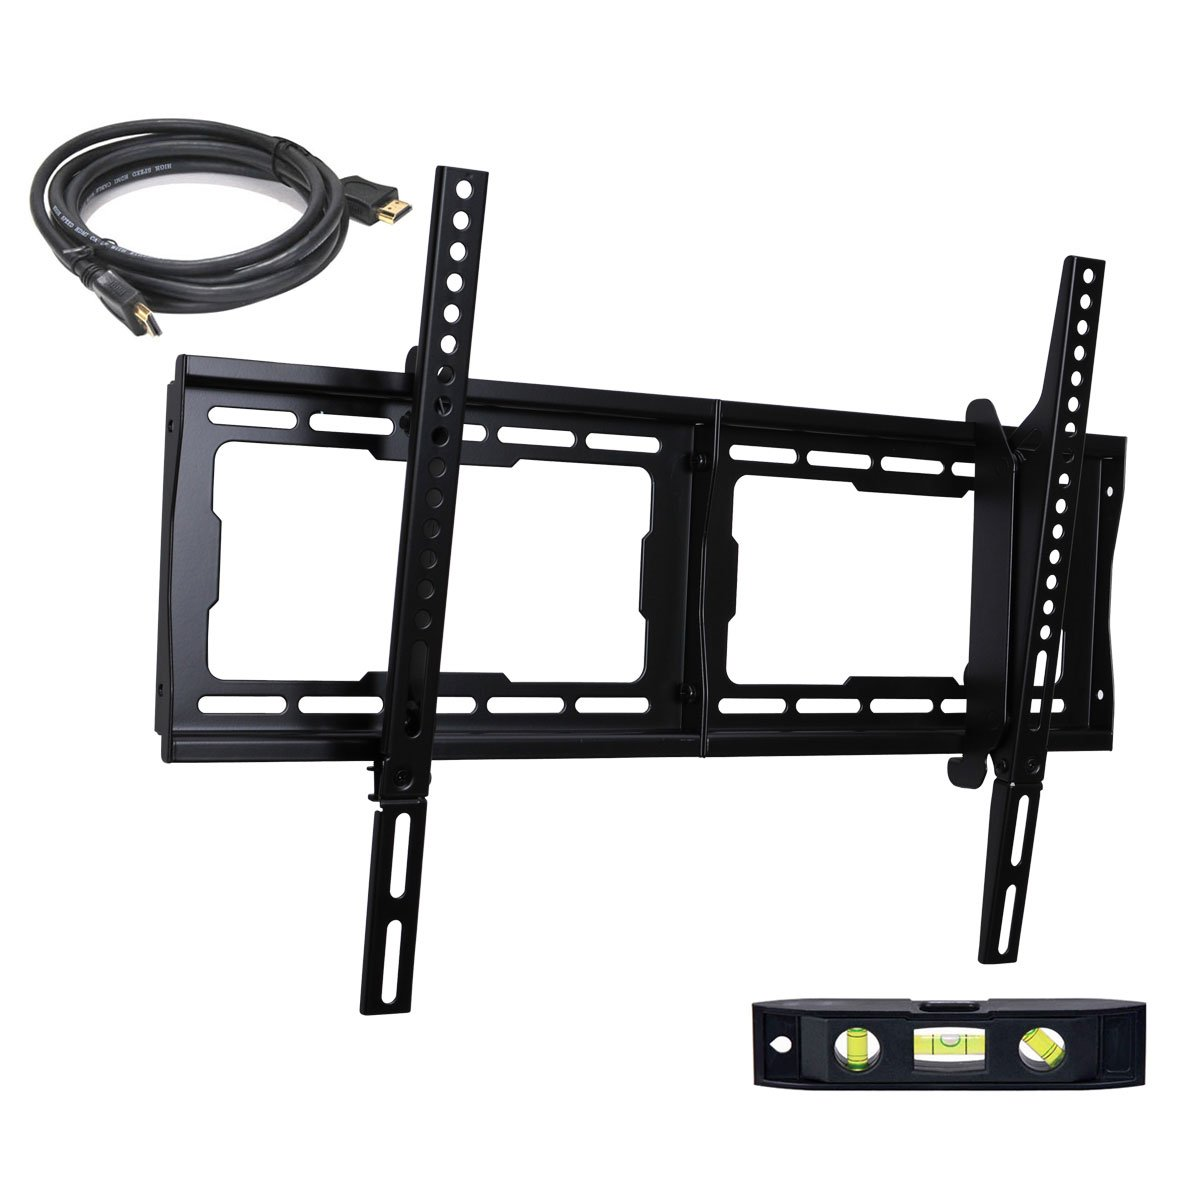 VideoSecu Flat Panel Tilt LCD LED 3D TV Wall Mount Fits most 32- 63 TVs for Panasonic TC-32LX14 TC-P42C2 TC-L42U12 TC-L32C12 TC-L32X1 TC-L37X1 TC-L37S1 TC-L37G1 TC-L32S1 LED HDTV- VESA Compatible up to 600x400 BG3 new universal adjustable tilt tilting tv wall mount bracket for samsung lcd led plasma max 165 lbs 23 37inch